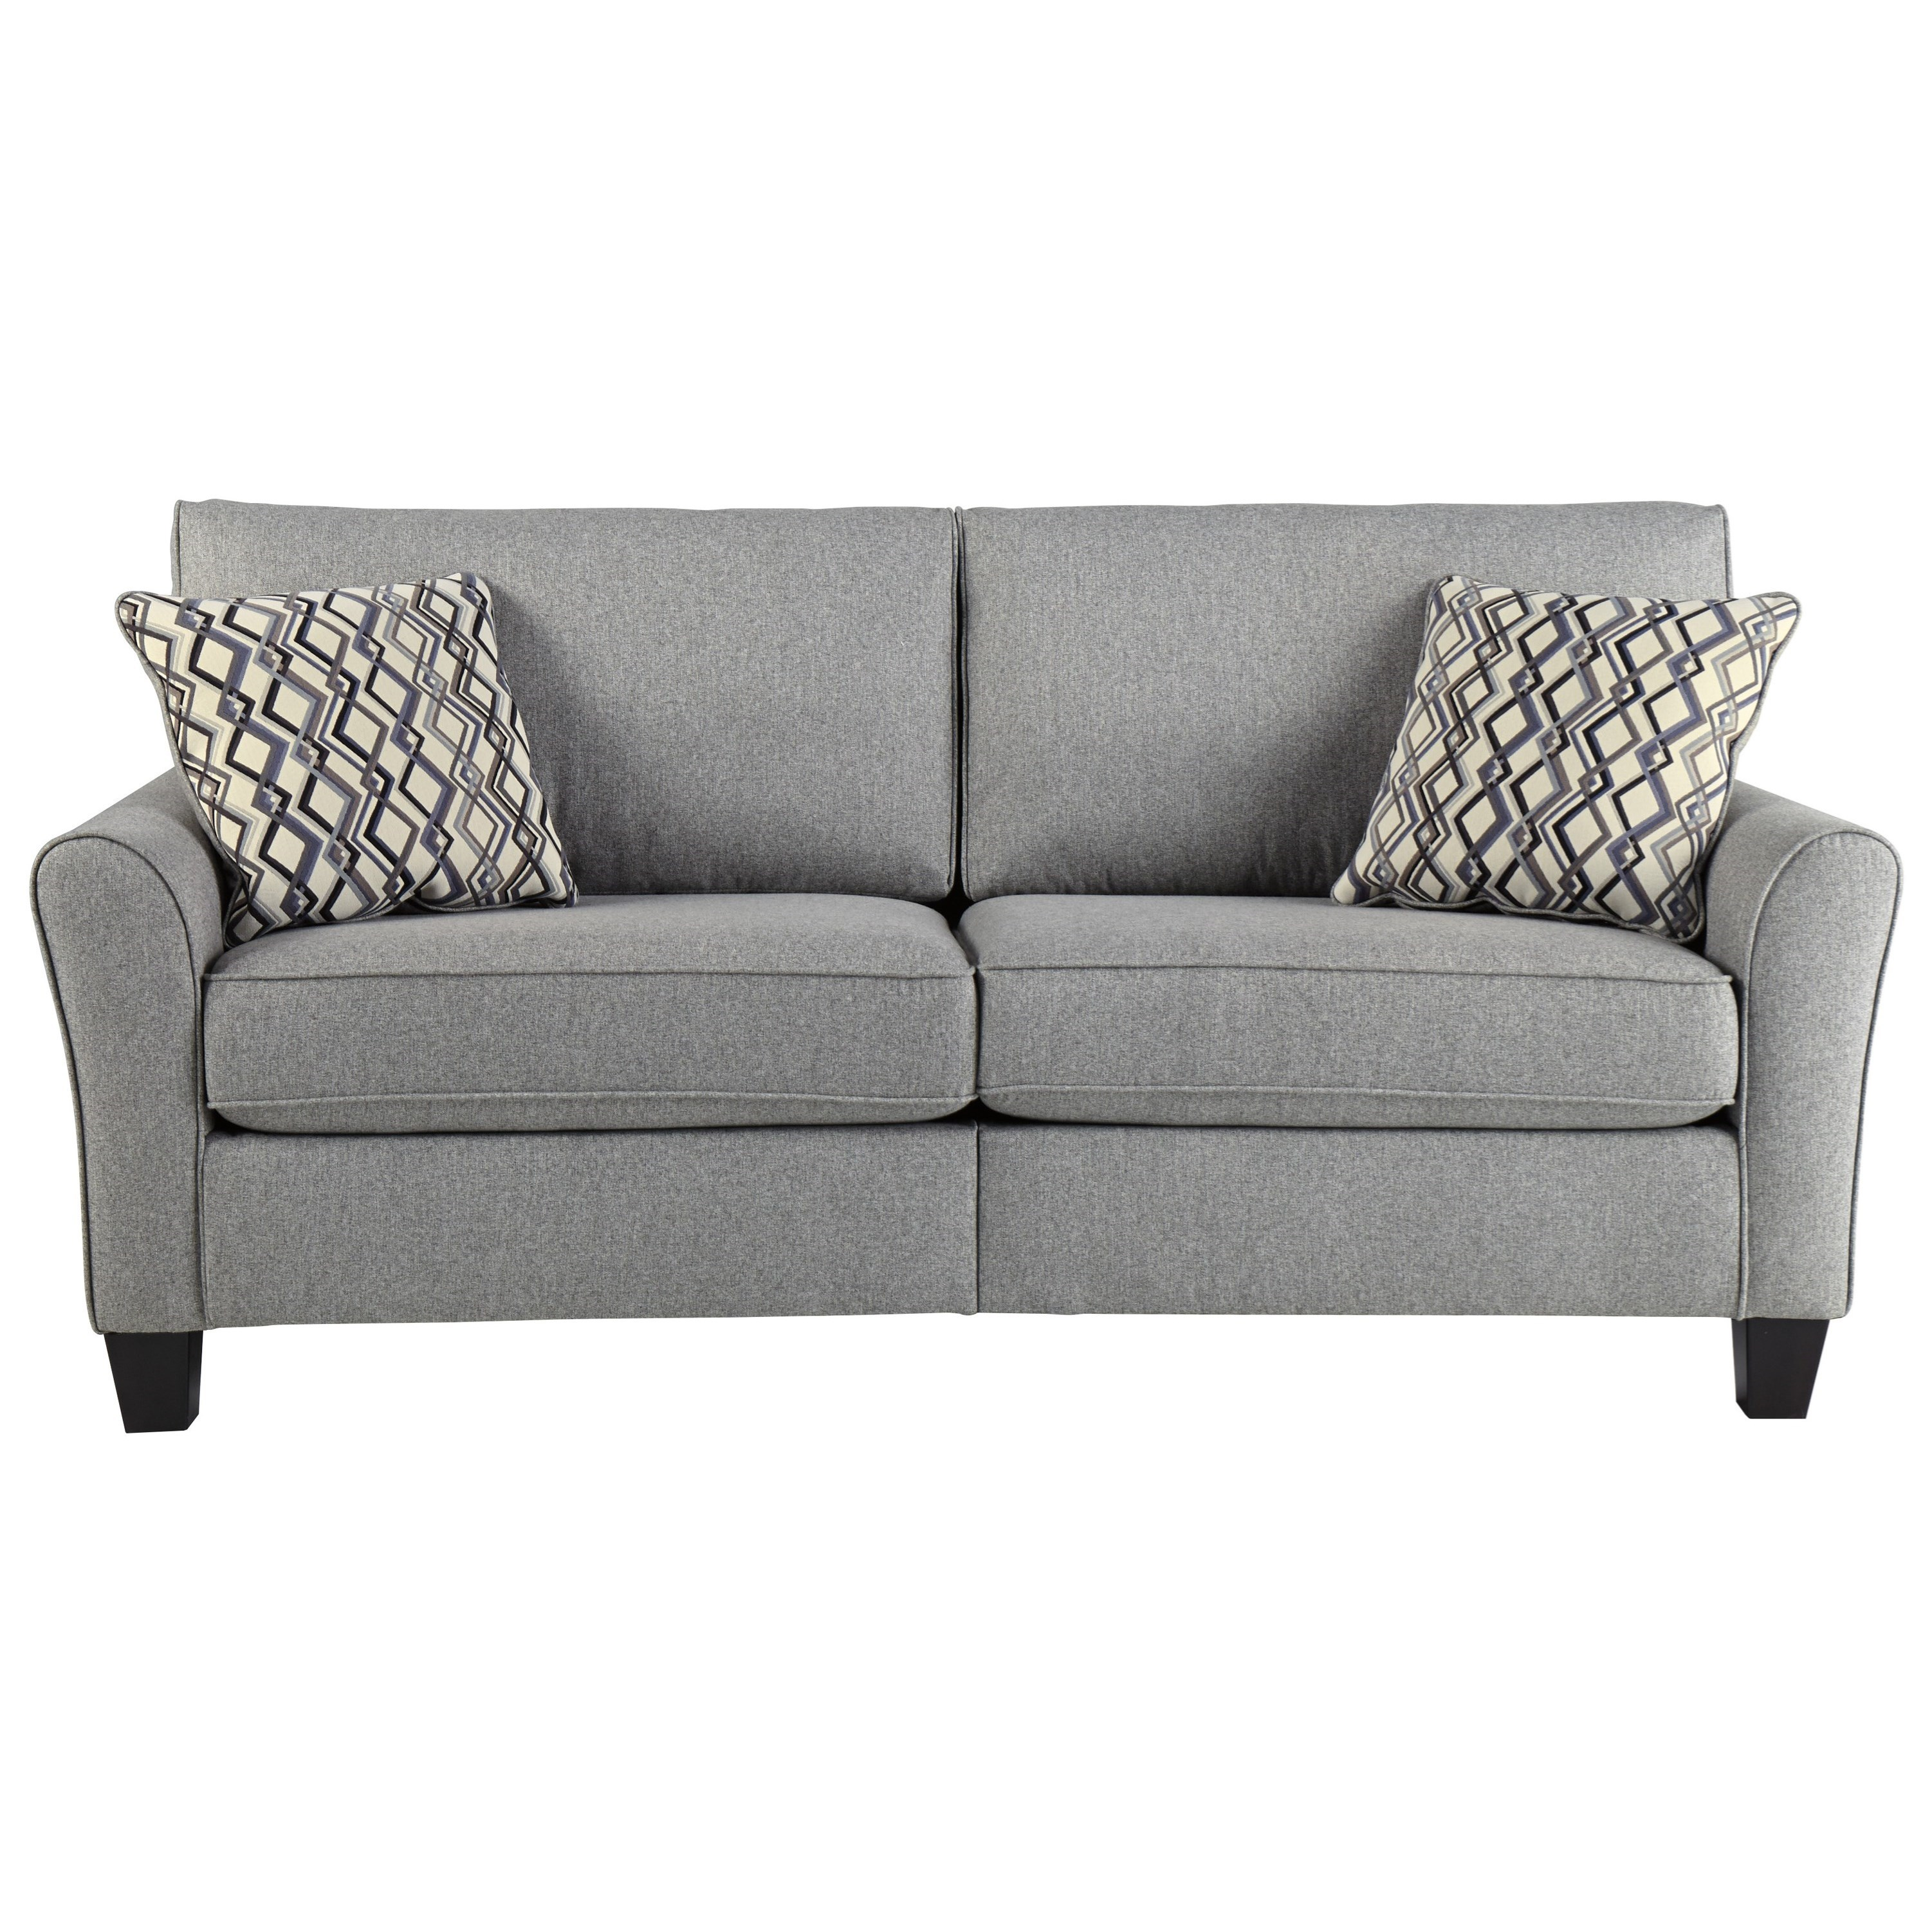 Strehela Stationary Sofa by Signature Design by Ashley at Lapeer Furniture & Mattress Center